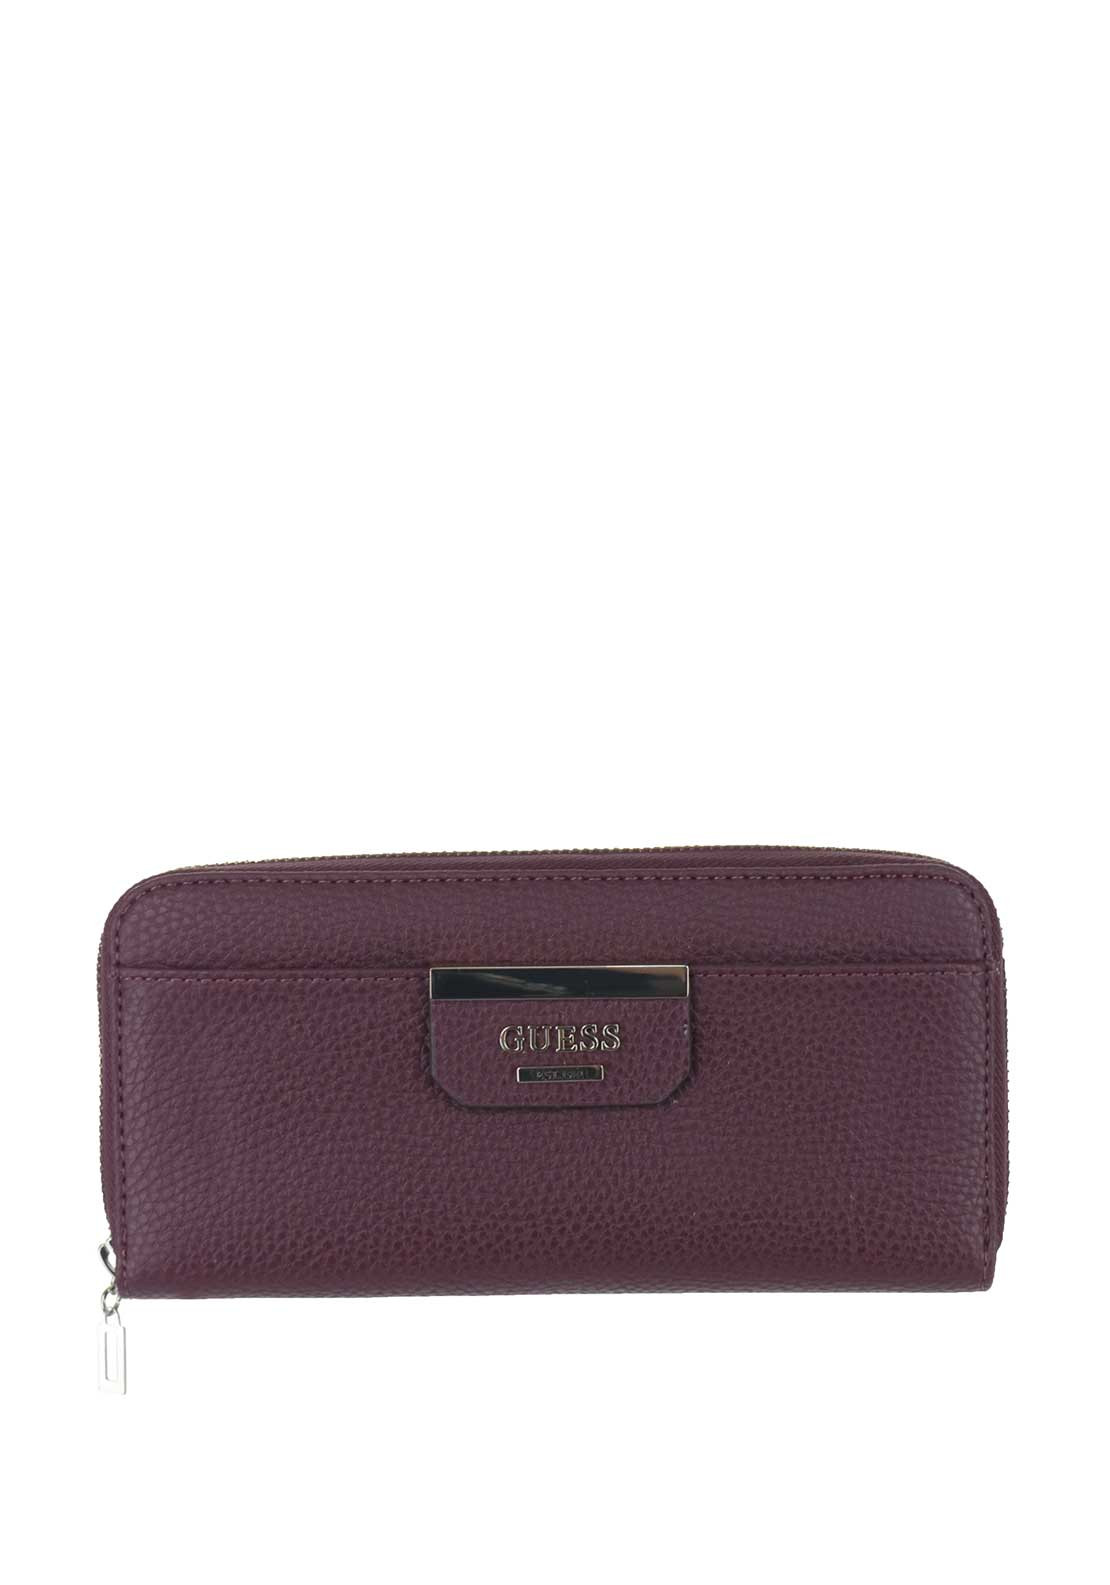 Guess Bobbi SLG Zip Around Purse, Bordeaux Multi